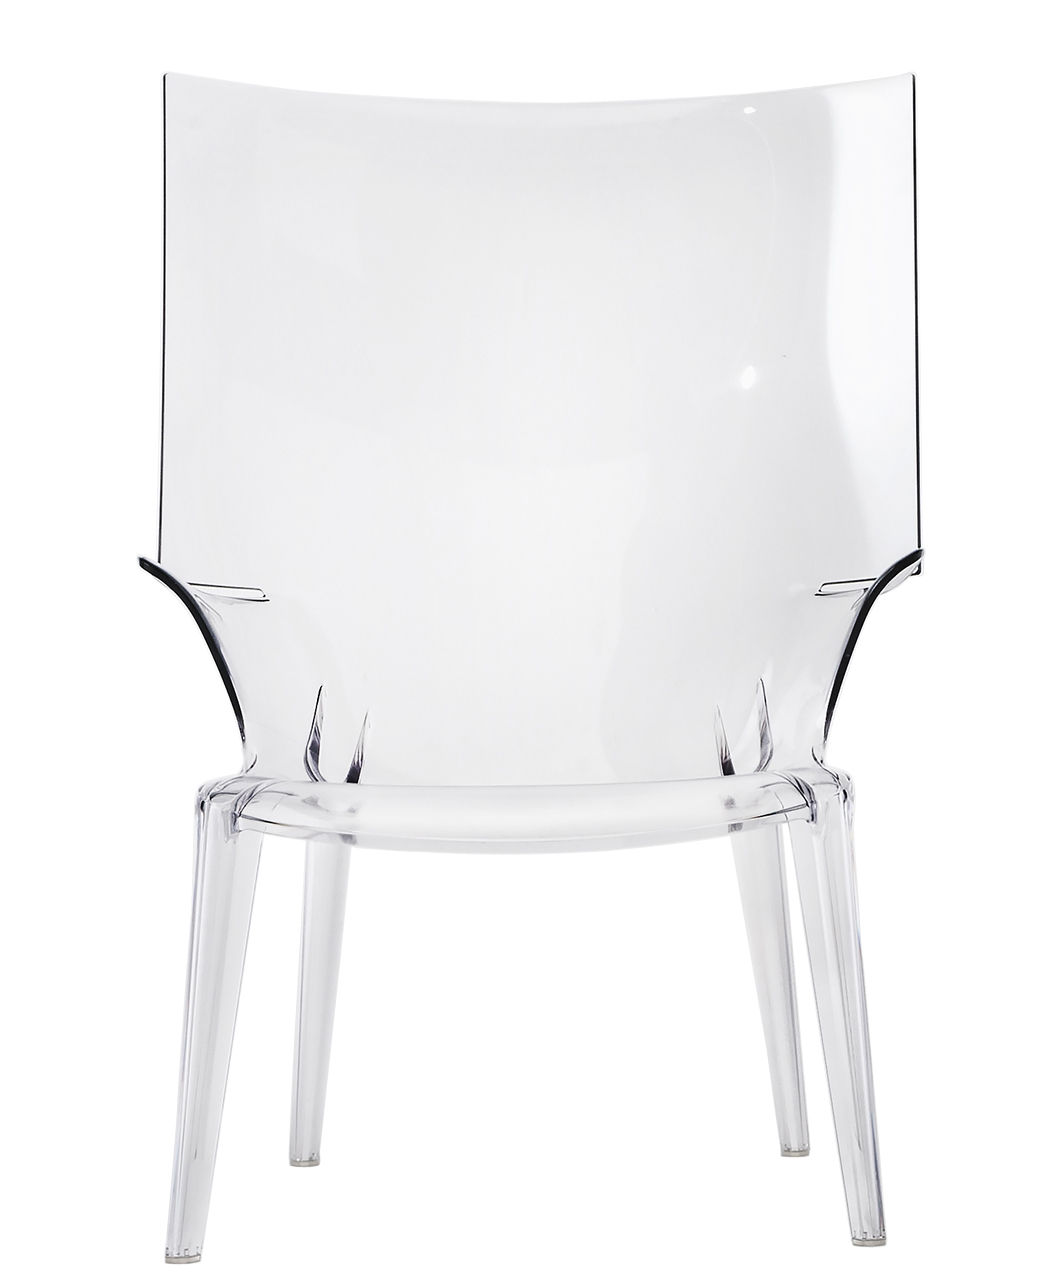 Furniture - Armchairs - Uncle Jim Armchair by Kartell - Clear - Polycarbonate